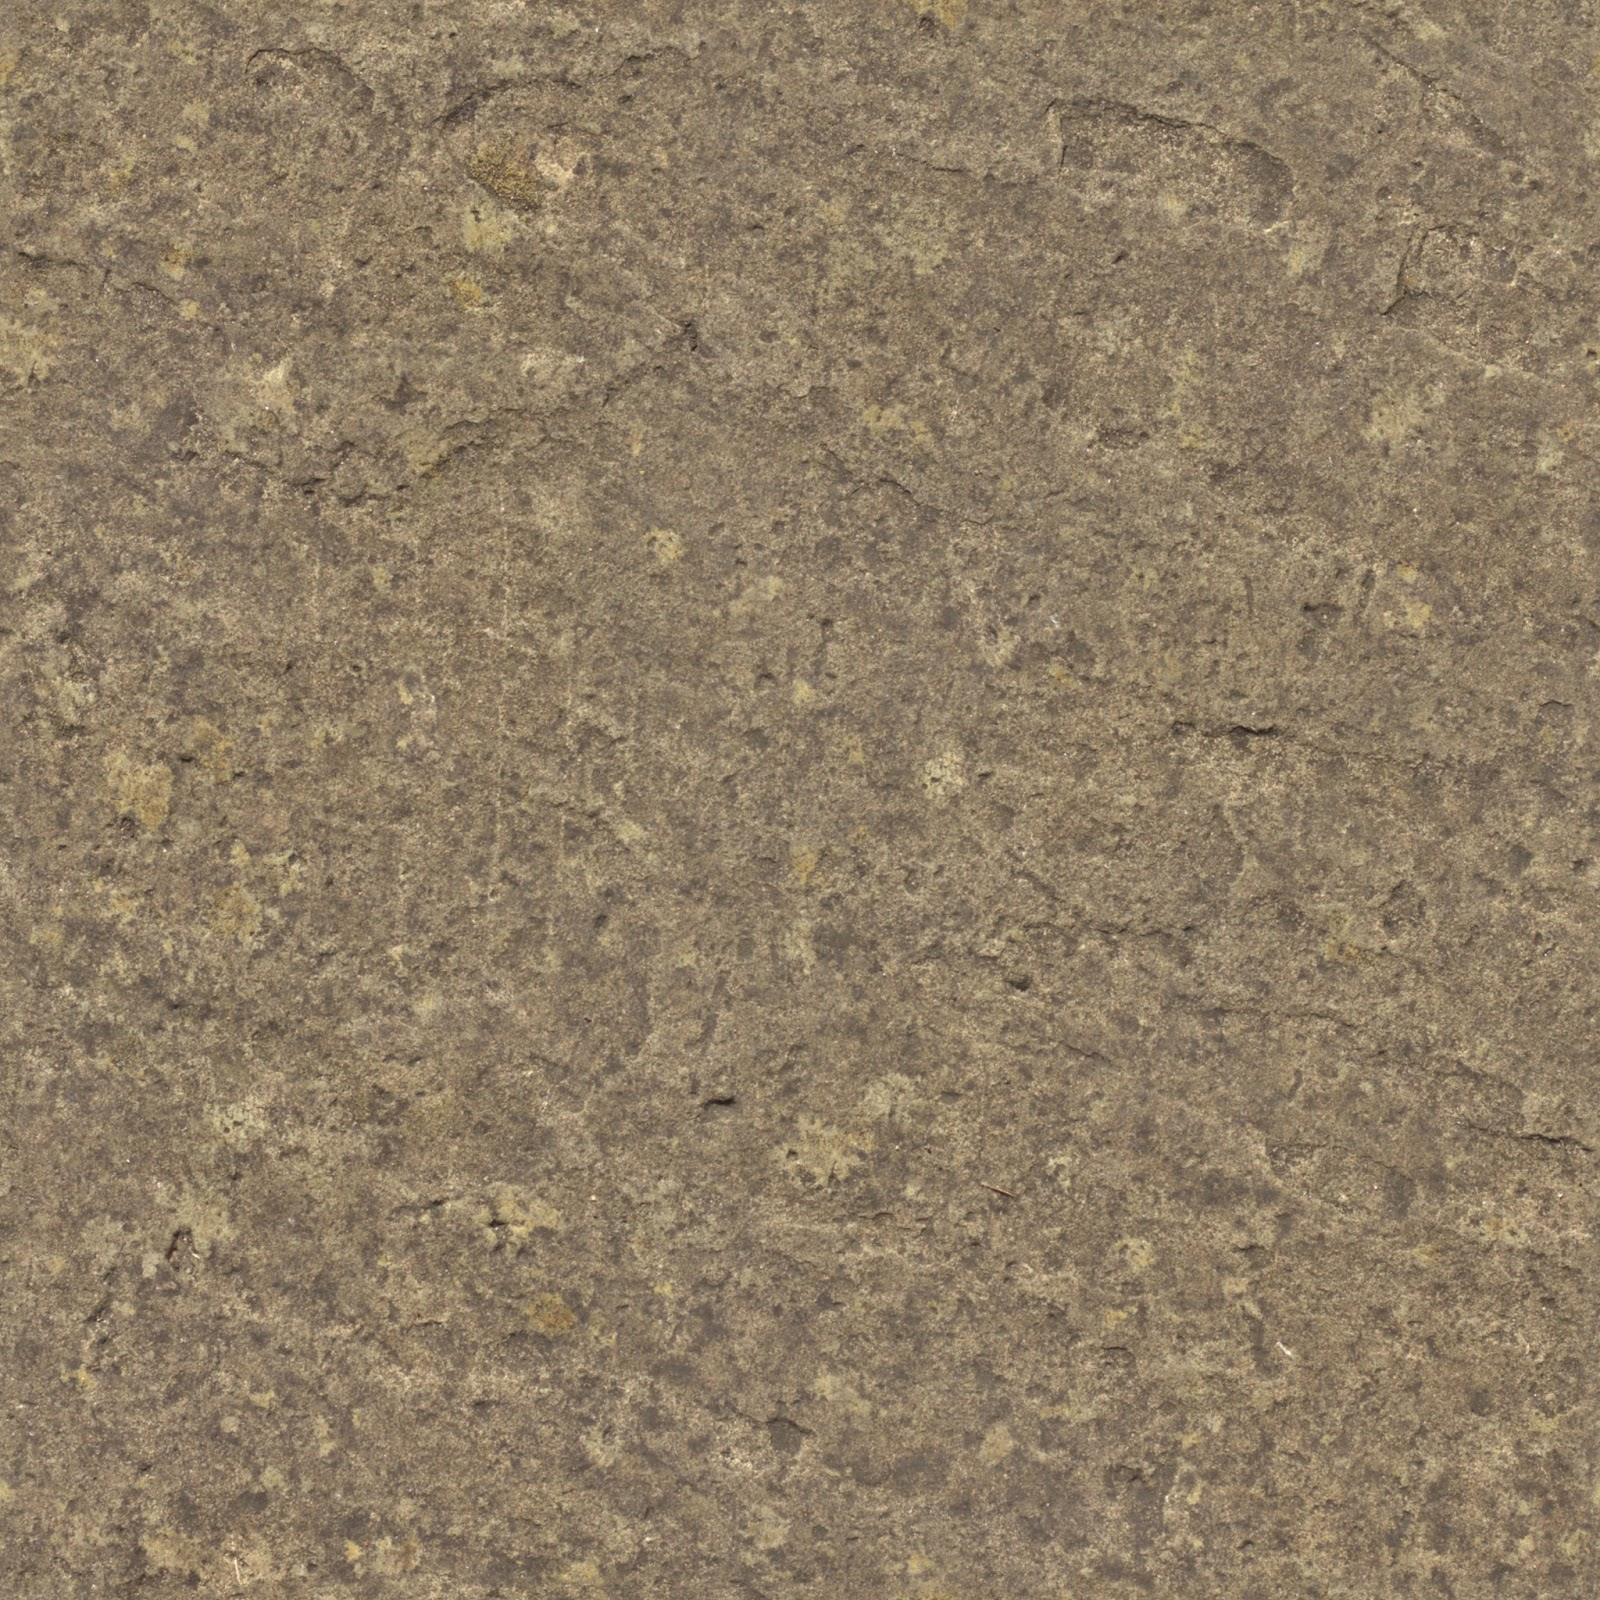 High Resolution Seamless Textures Stone 3 Rock Cave Mountain Brown Texture